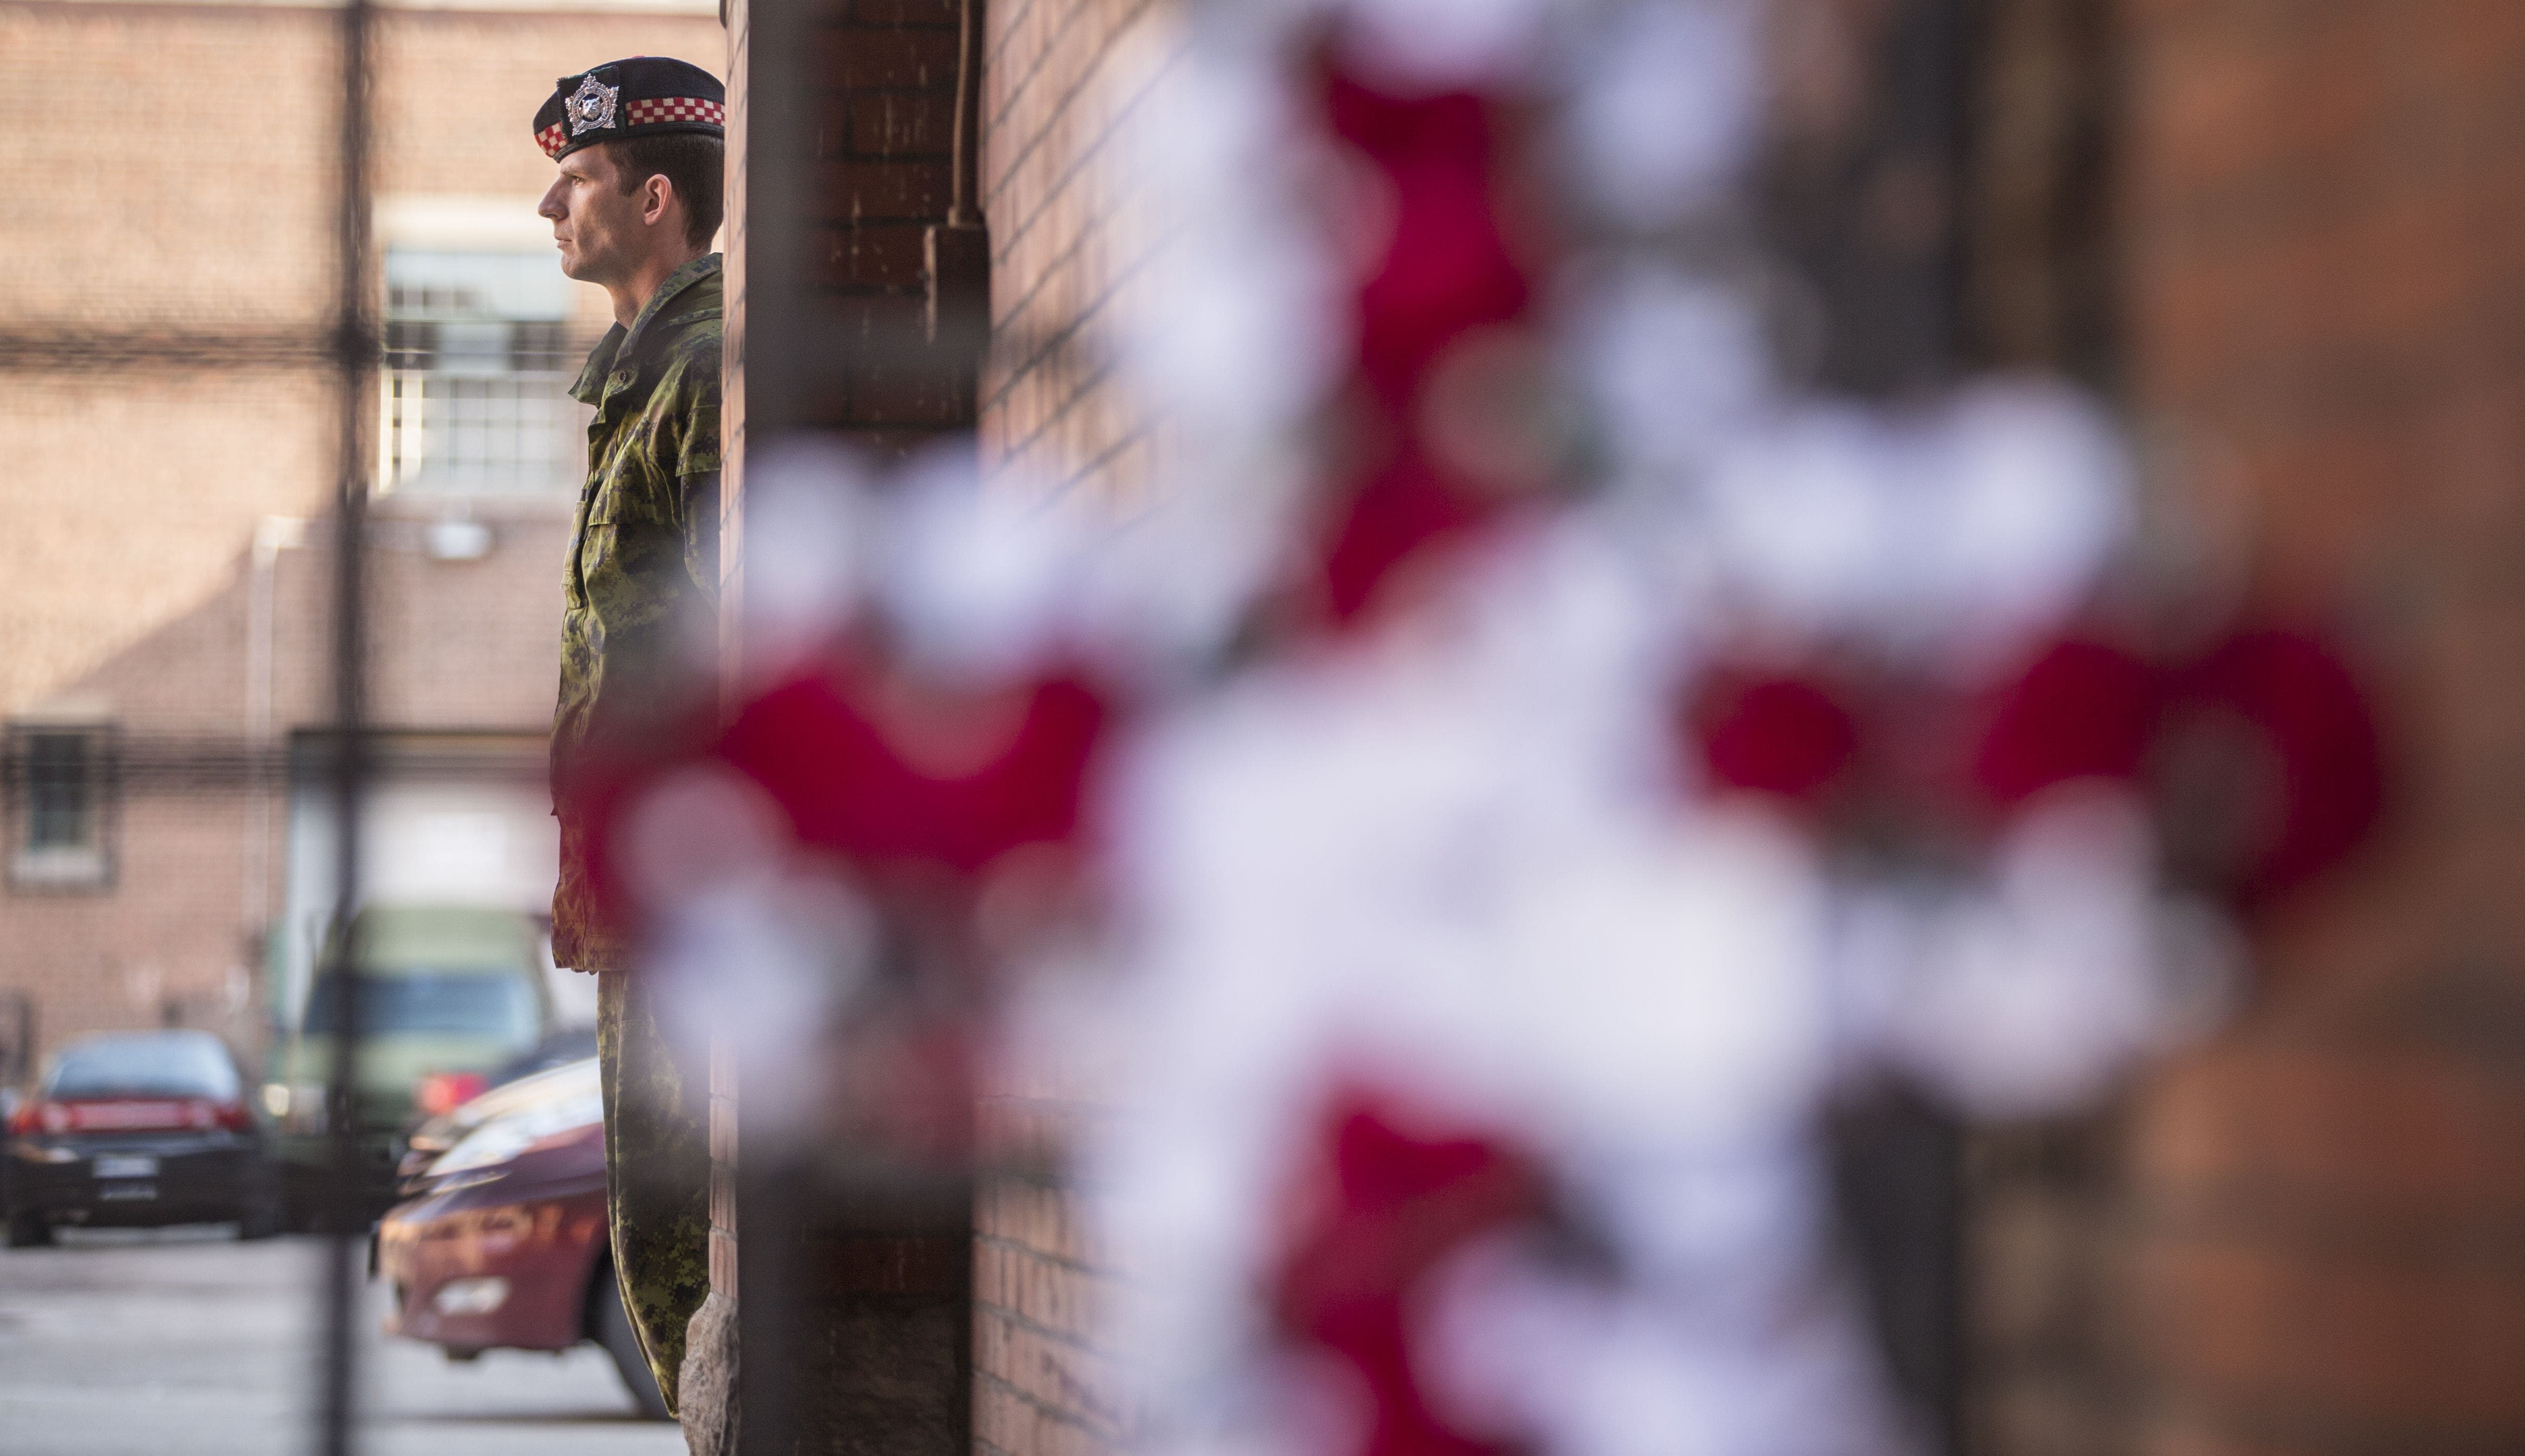 A floral memorial is seen as a soldier stands guard at the John Weir Foote V.C. Armouries in Hamilton, Ontario, October 22, 2014 after a soldier believed to be from the base was killed in an attack in Ottawa.